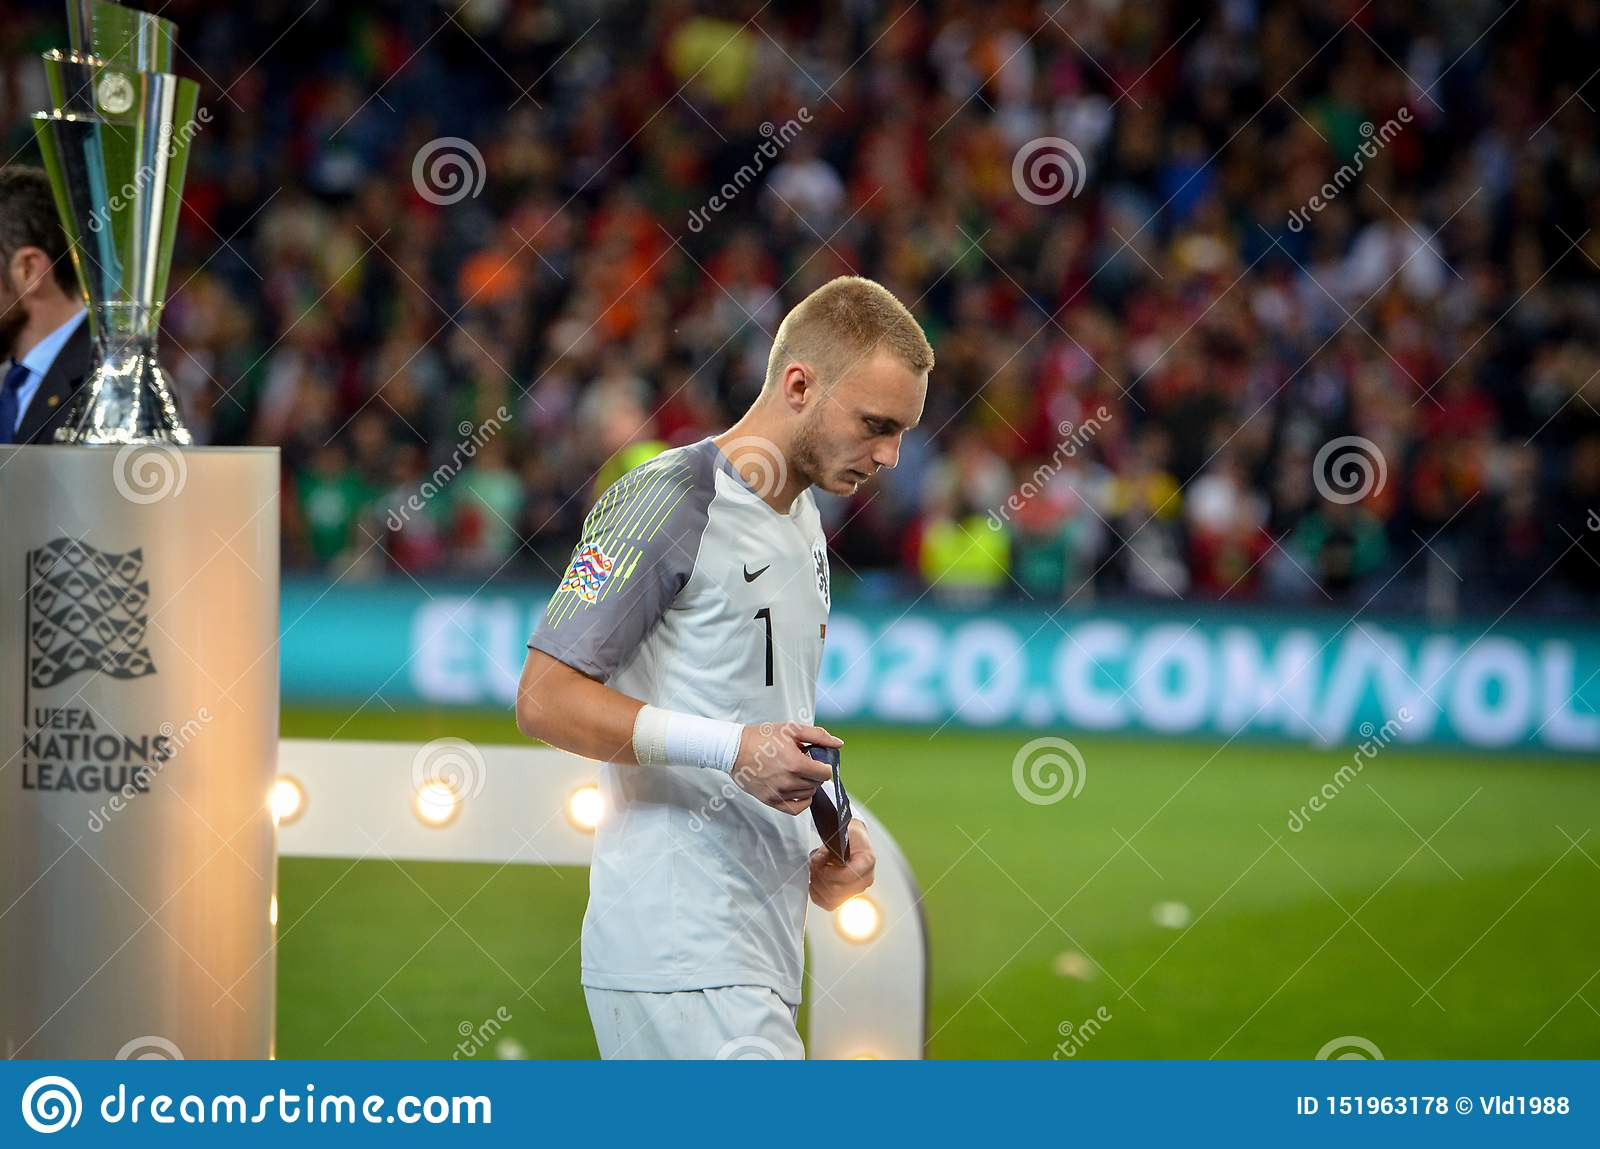 Porto Portuglal June 09 2019 Jasper Cillessen Receive Silver Medals During The Uefa Nations League Finals Match Between Editorial Stock Photo Image Of Ball Team 151963178